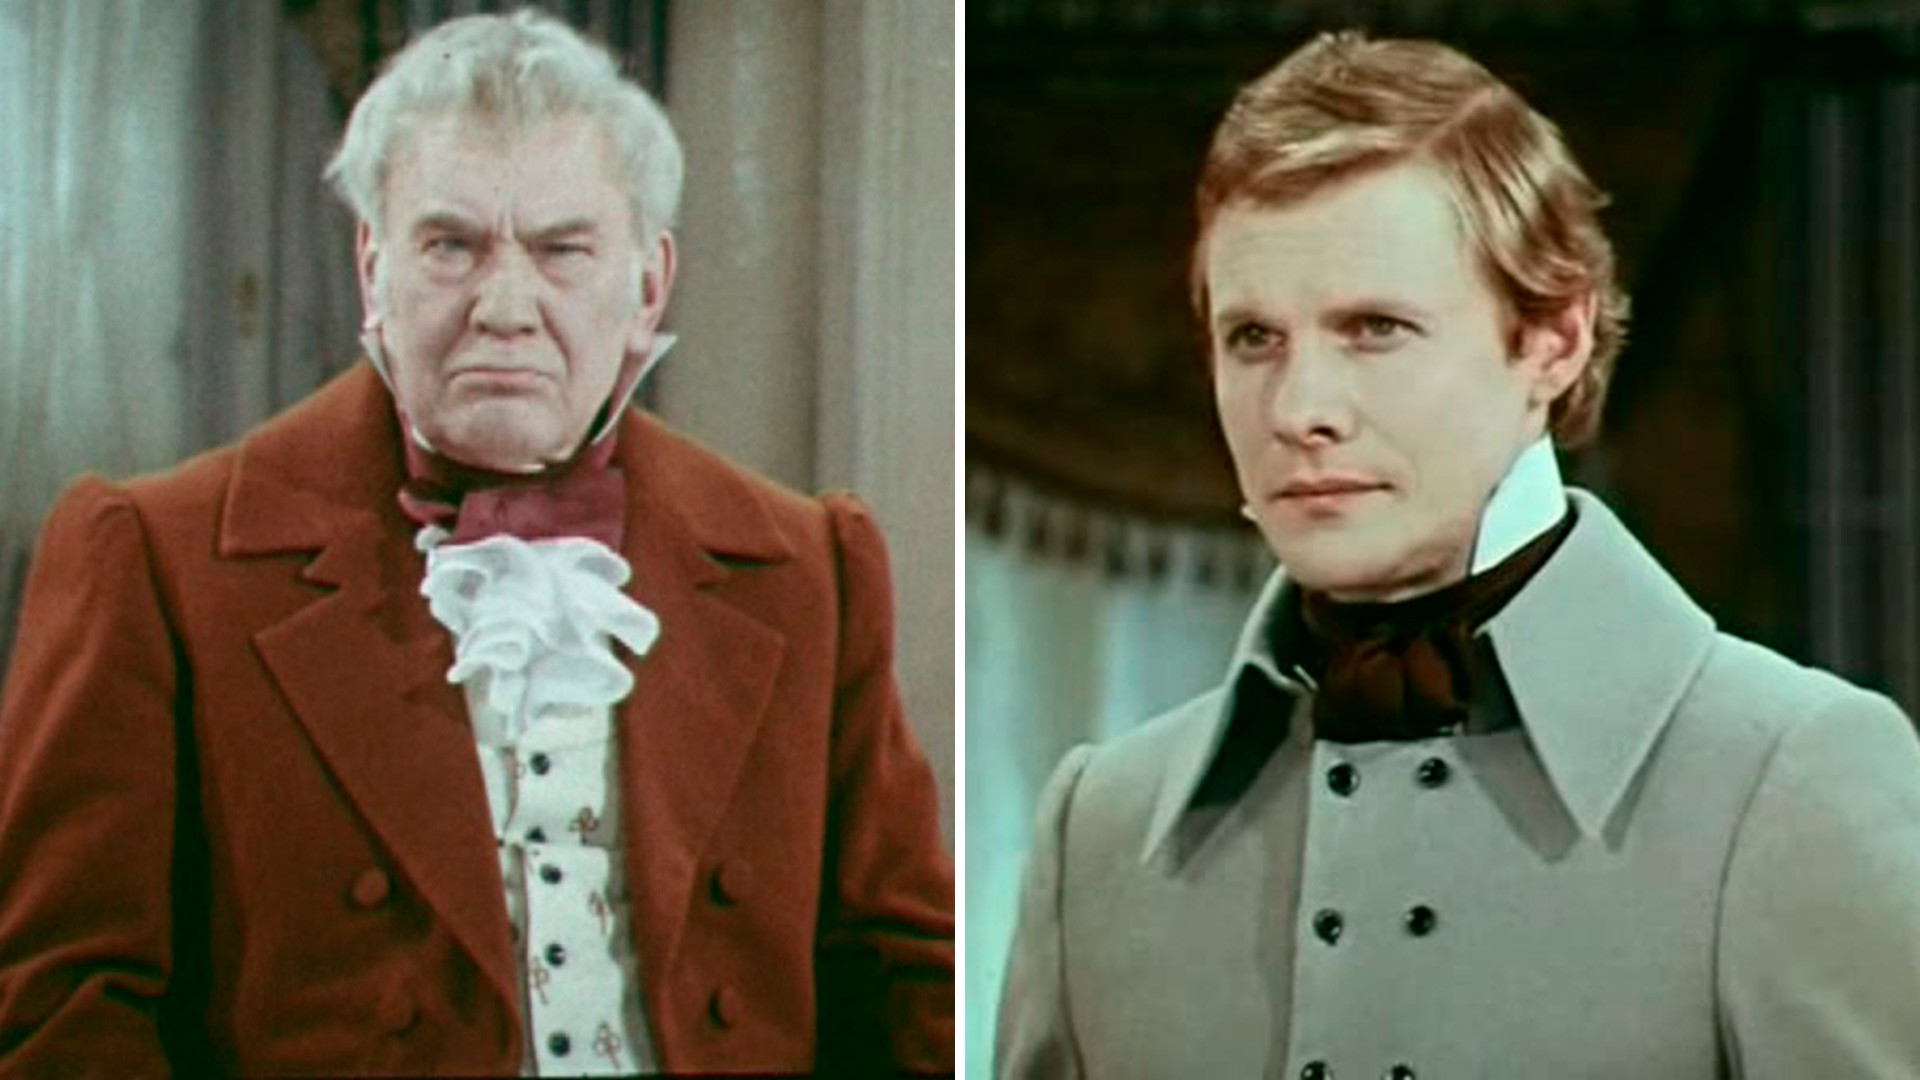 Mikhail Tsarev (L) as Pavel Famusov, Vitaliy Solomin (R) as Alexander Chatsky in a 1977 Soviet teleplay 'Woe from Wit'